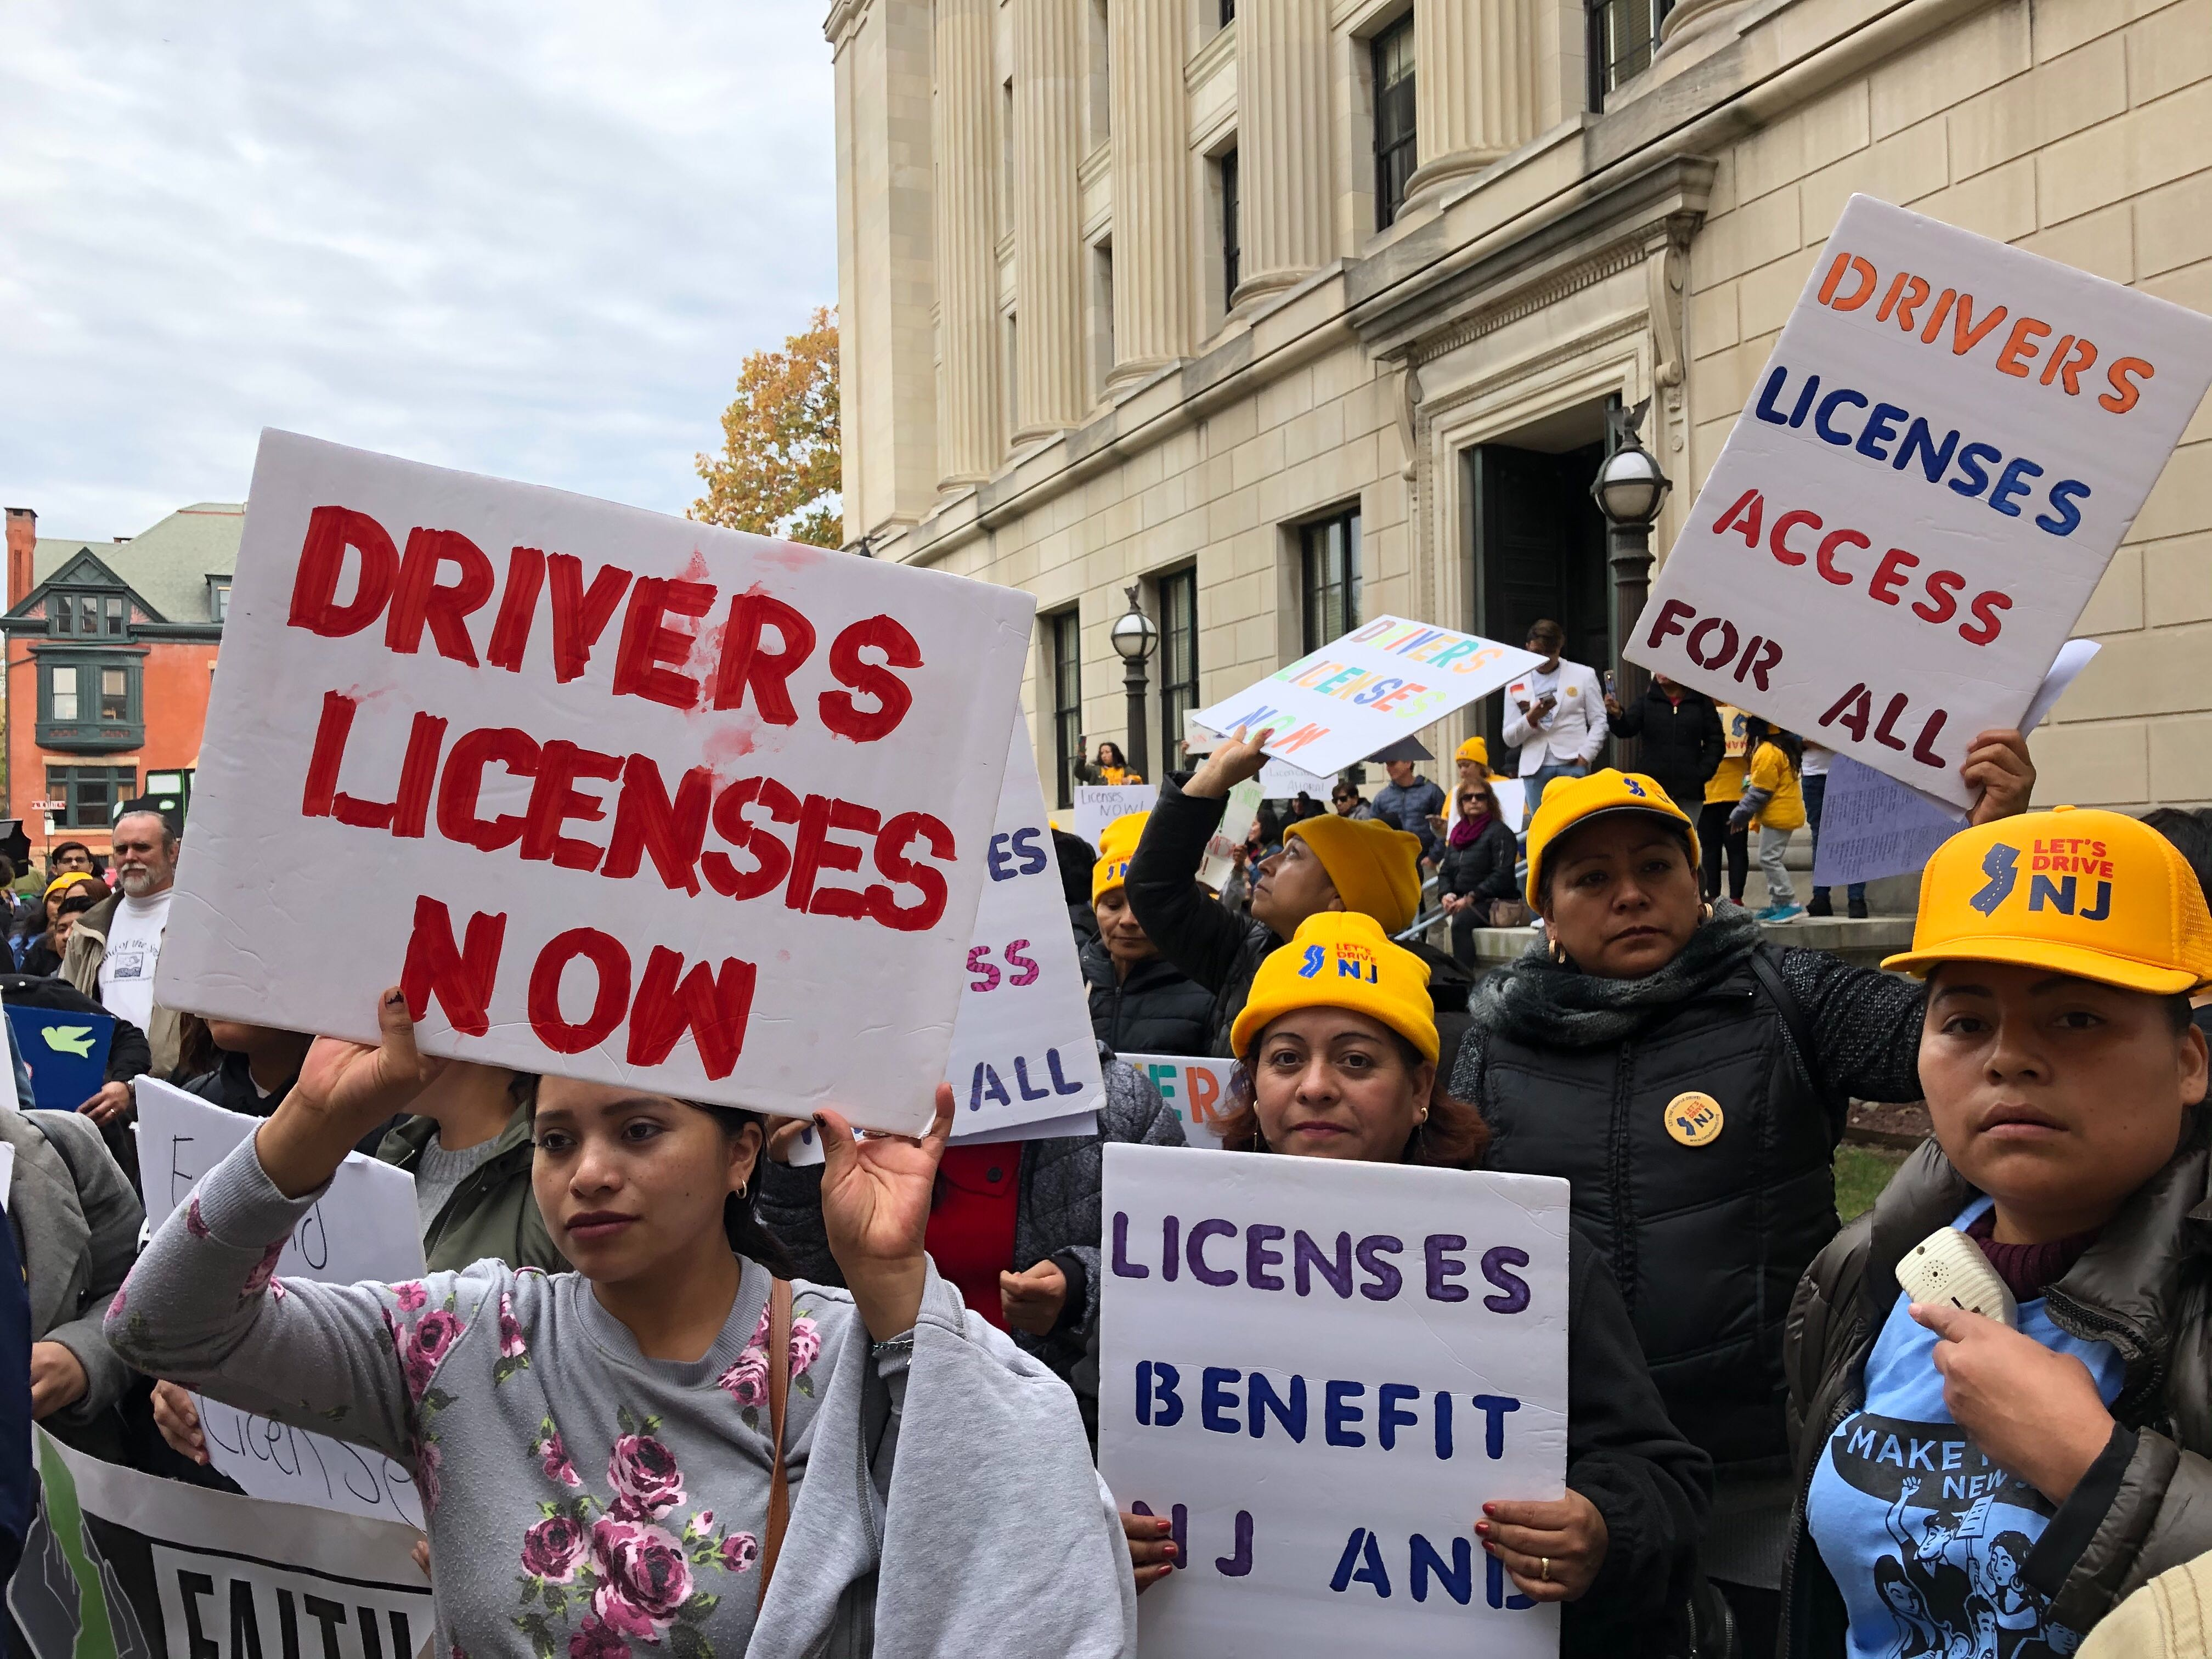 N.J. could be the next state to allow driver's licenses for undocumented immigrants